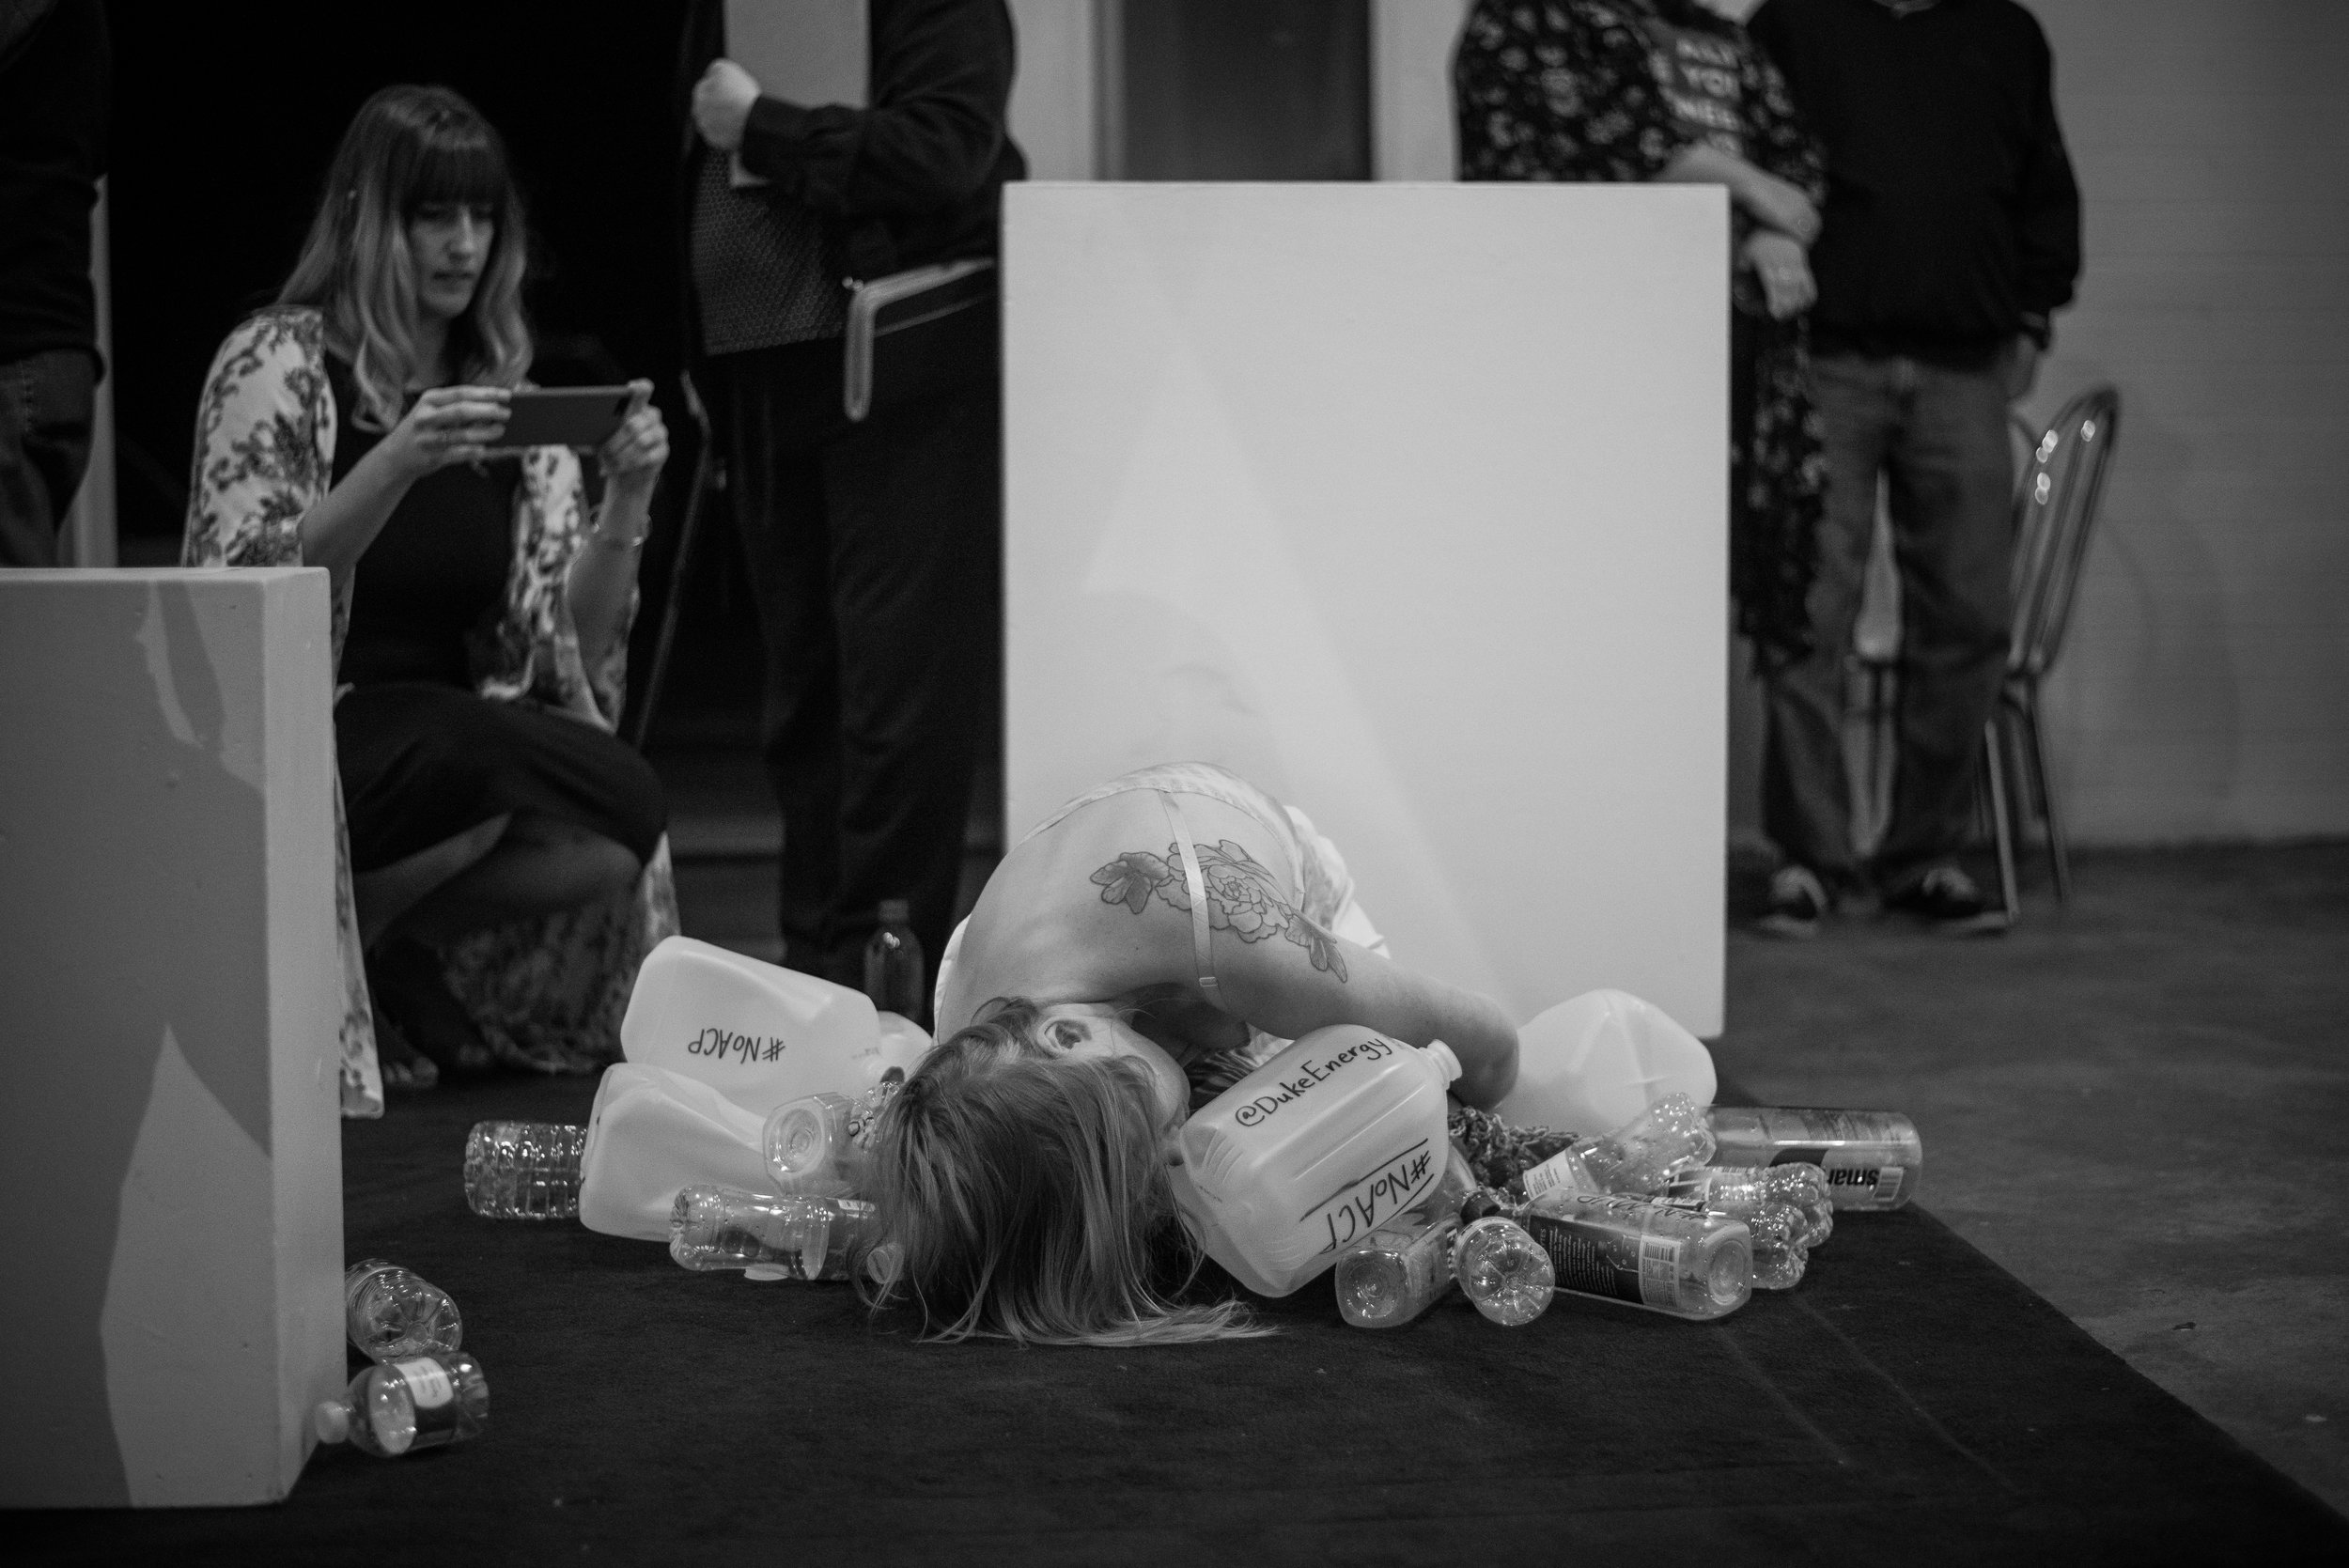 Slowly, Painfully, by Poison  was a live art body installation performed at Hart Witzen Gallery in Charlotte, NC, on April 21st, 2018.   This was a ritual death-dance in protest of the fracked-gas Atlantic Coast Pipeline.  Observers were invited to spread photos and videos via social media, specifically tagging NC Governor Cooper, Duke Energy, and Dominion Energy as entities of power responsible for this violence.  Photography captured by Jessica Britton of Birdi Photography